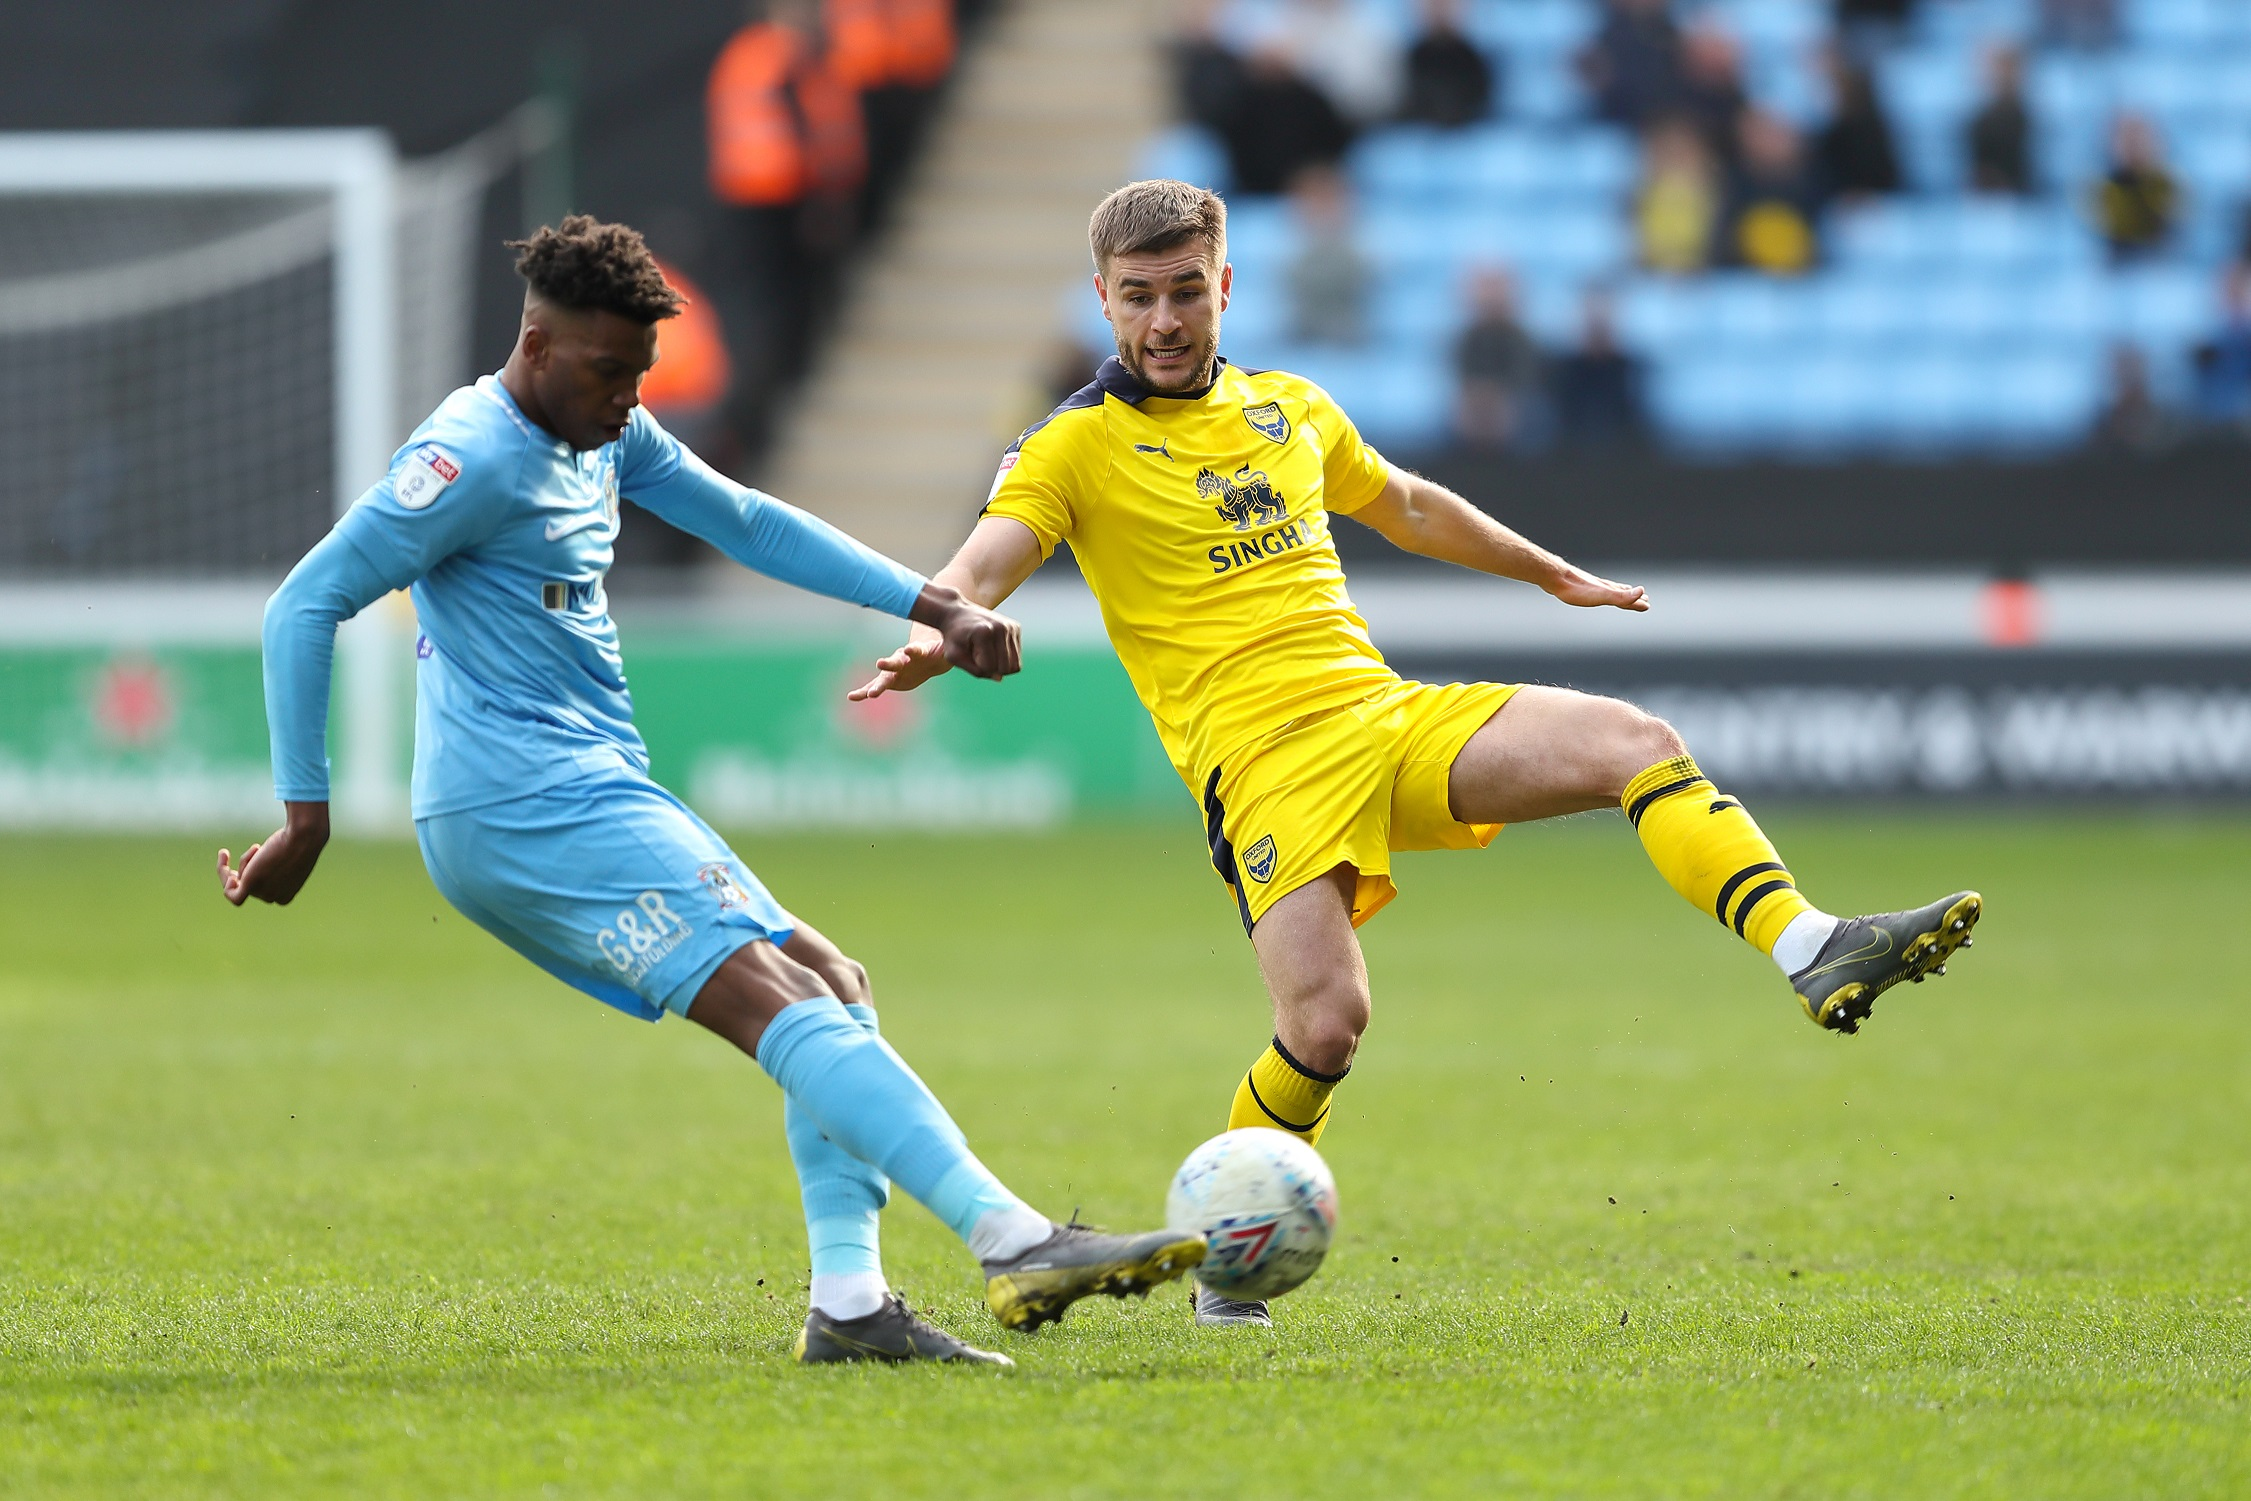 Oxford United's Luke Garbutt puts the pressure on in the win at Coventry City  Picture: James Williamson